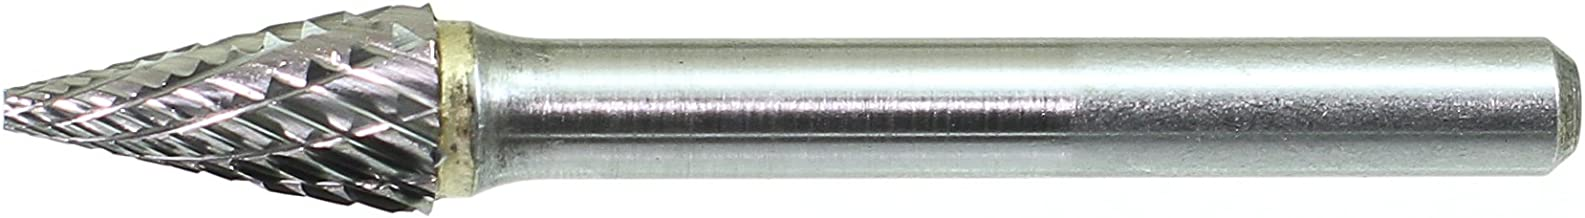 1//8 Shank Diameter Cone Single Cut 1//2 Cutting Length Drillco 7000M Series Magnum Solid Carbide Miniature Bur 1//4 Head Diameter Pack of 1